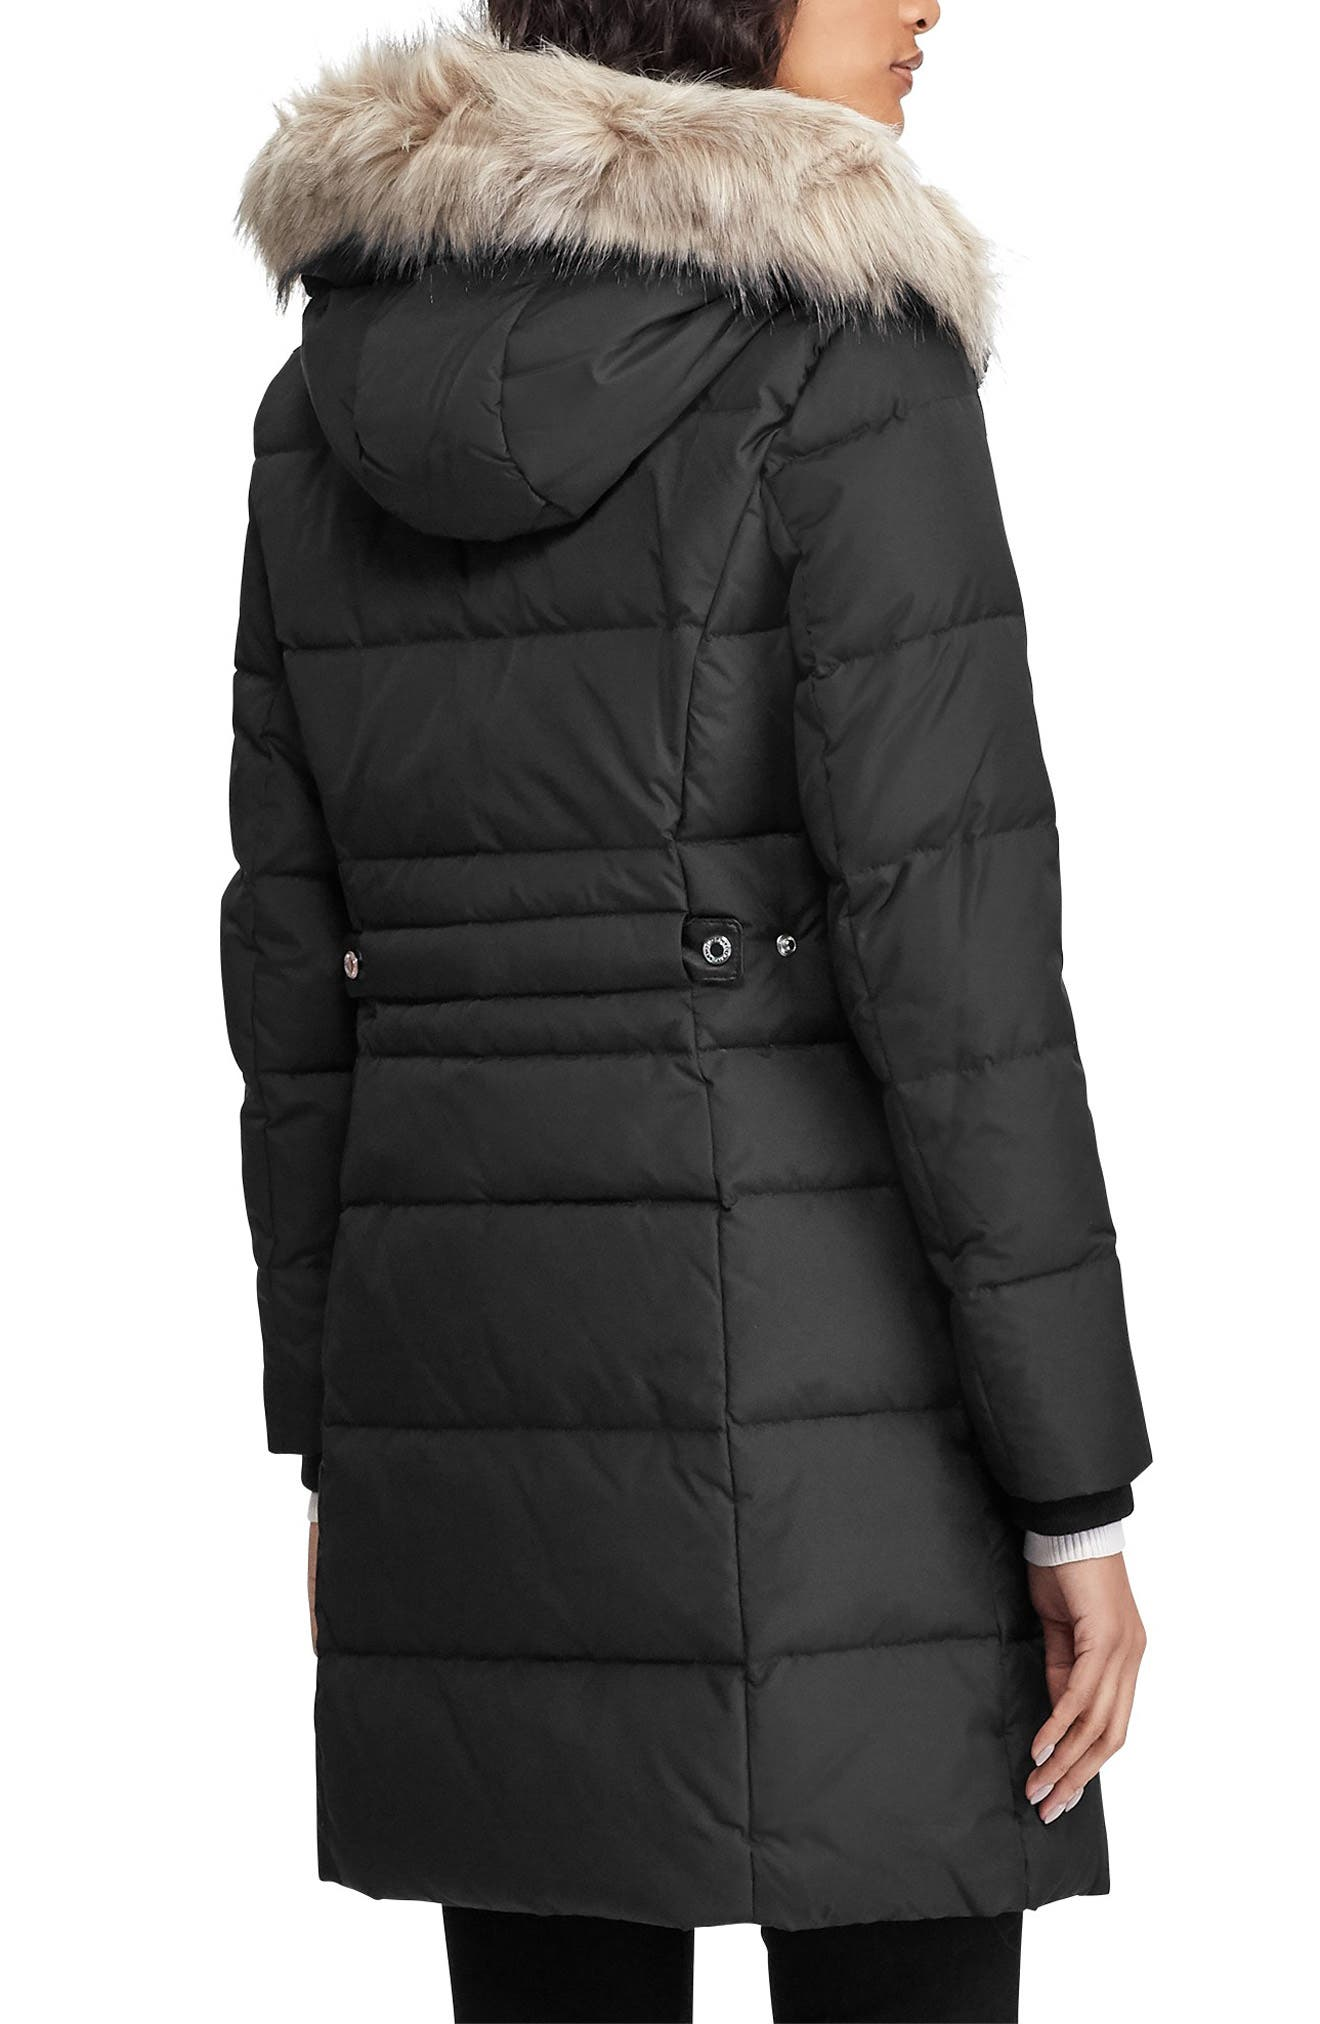 speical offer top fashion wholesale outlet Women's Faux Fur Coats & Jackets | Nordstrom